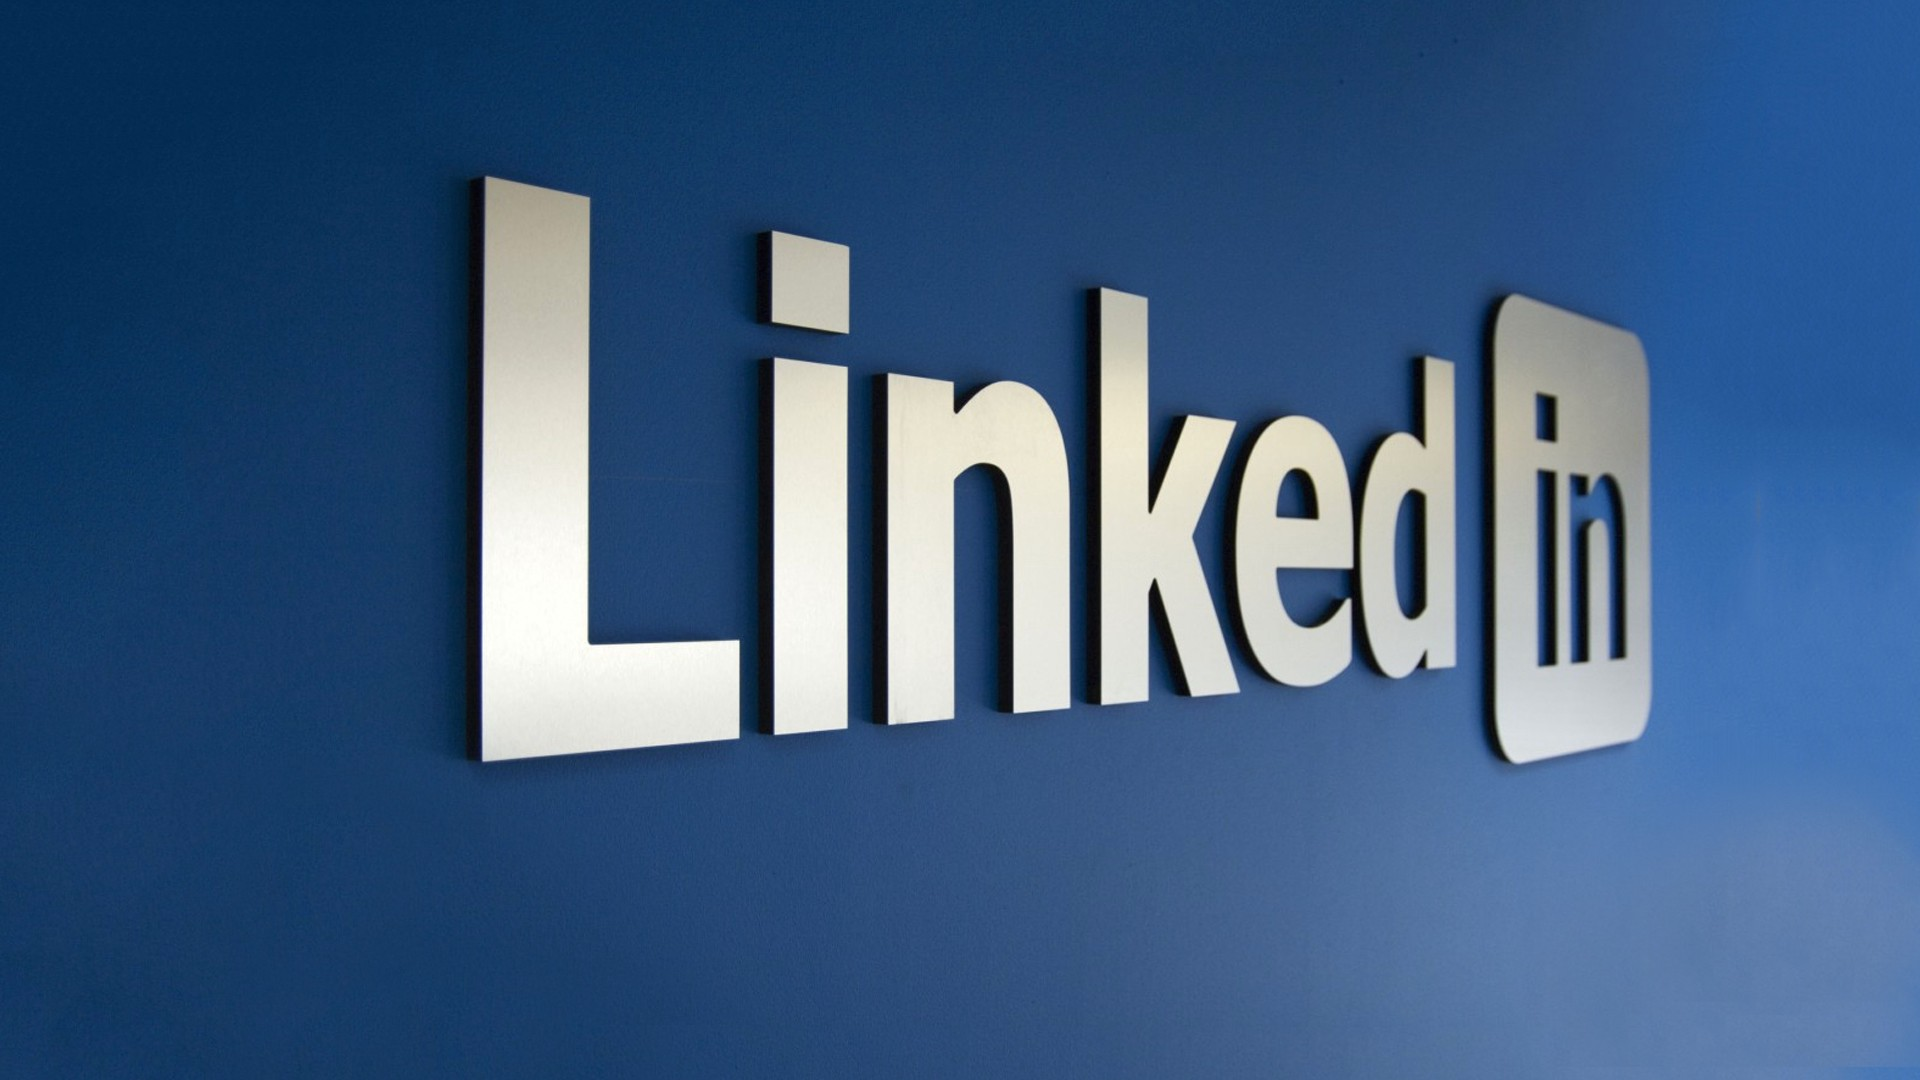 How To Add Bullet Points And Symbols To Your Linkedin Profile